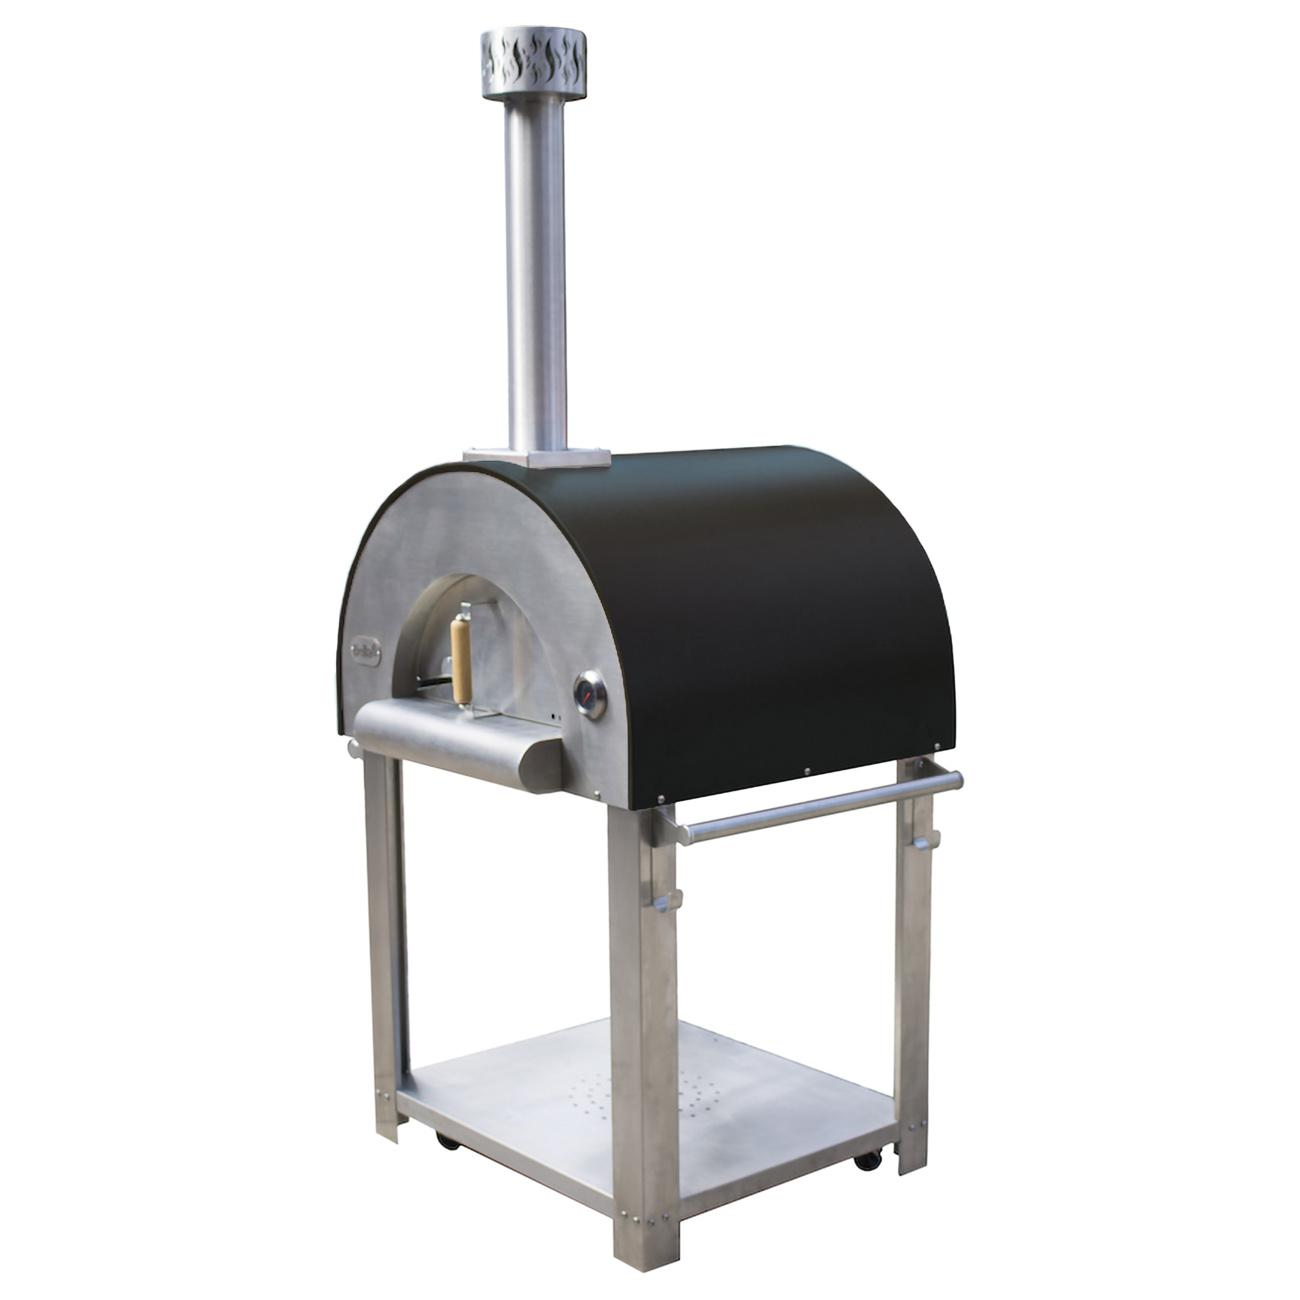 "Bella Outdoor Living Bella Medio 28"" Outdoor Wood Fired Pizza Oven On Cart - Black - Bems28b"